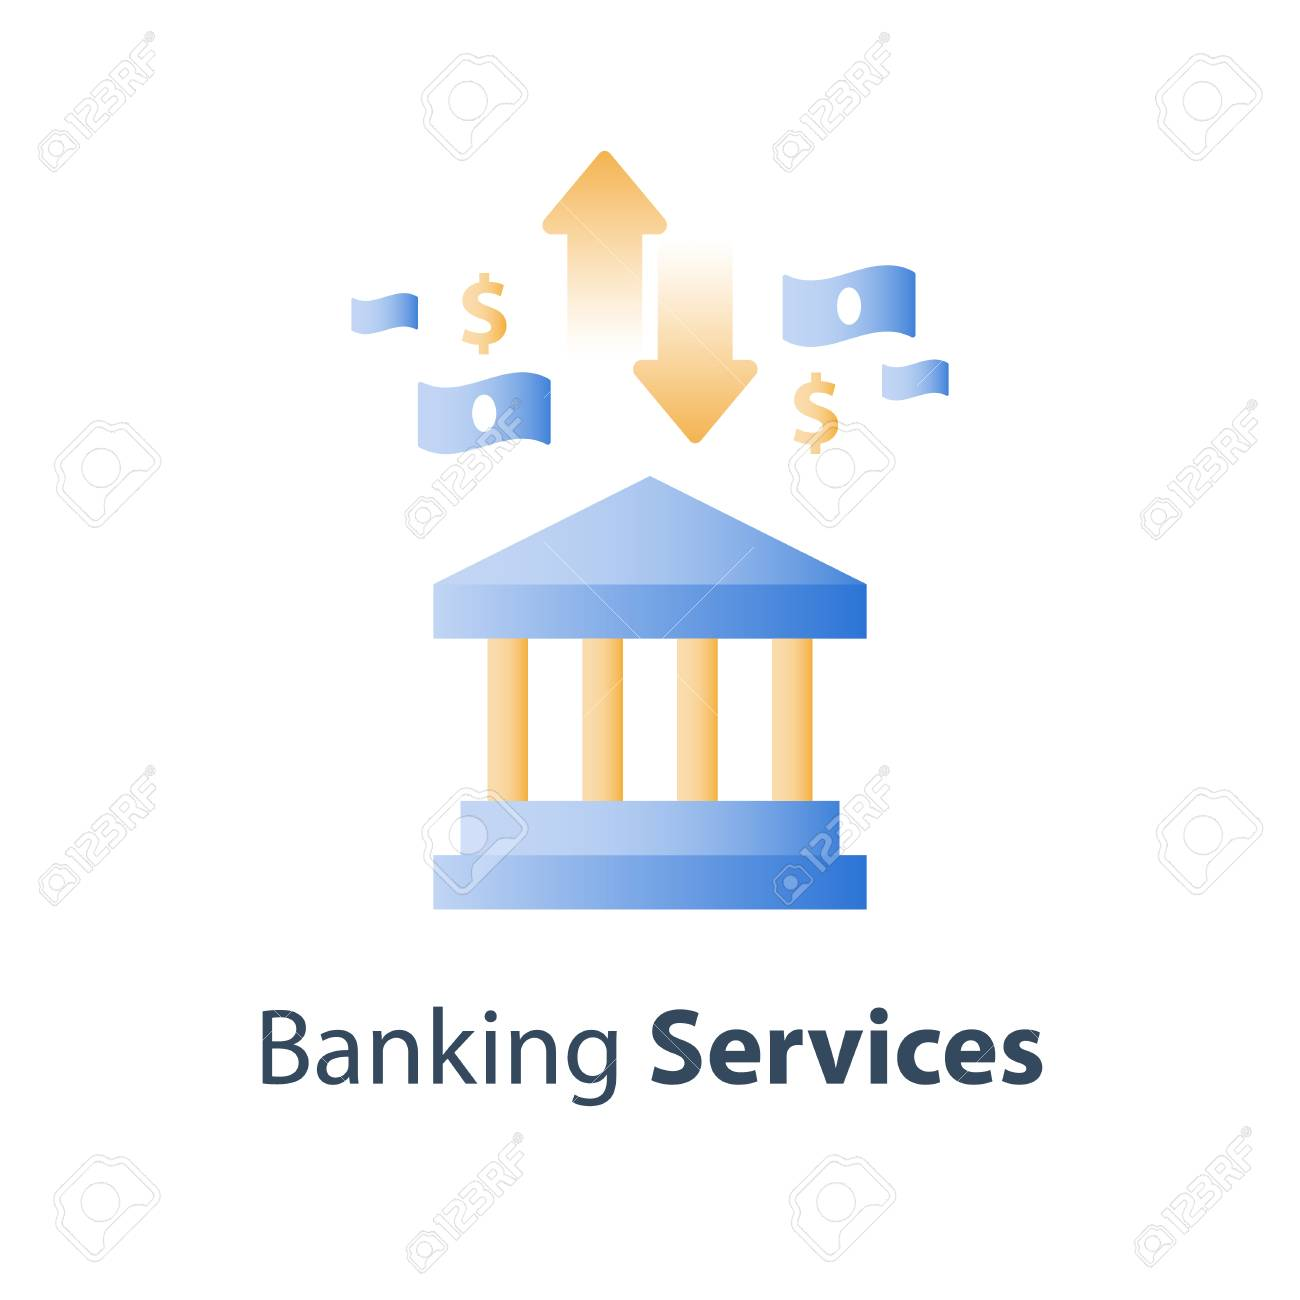 Bank Services Savings Account Deposit Money Pension Fund Royalty Free Cliparts Vectors And Stock Illustration Image 118575877